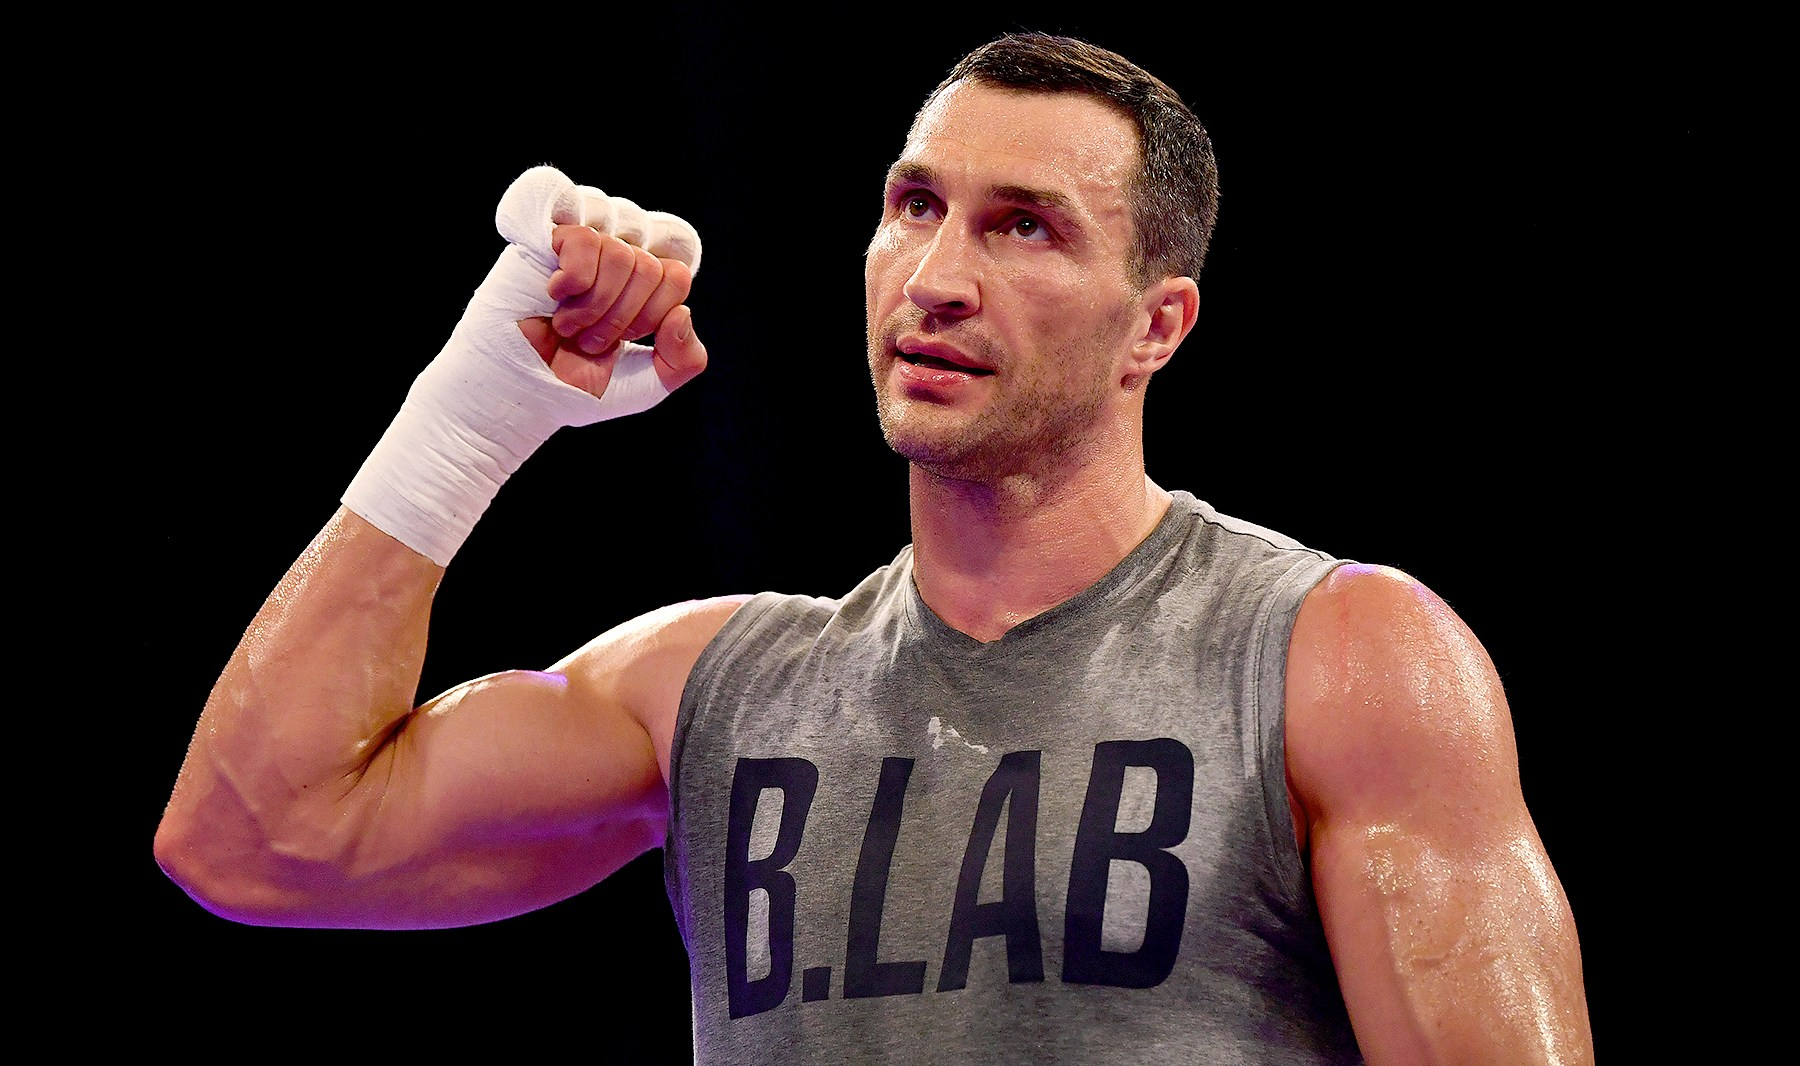 Wladimir Klitschko takes part in an open workout at Wembley Arena on April 26, 2017 in London, England. Anthony Joshua and Wladimir Klitschko are due to fight for the IBF, IBO and WBA Super Heavyweight Championships of the World at Wembley Stadium on April 29, 2017.